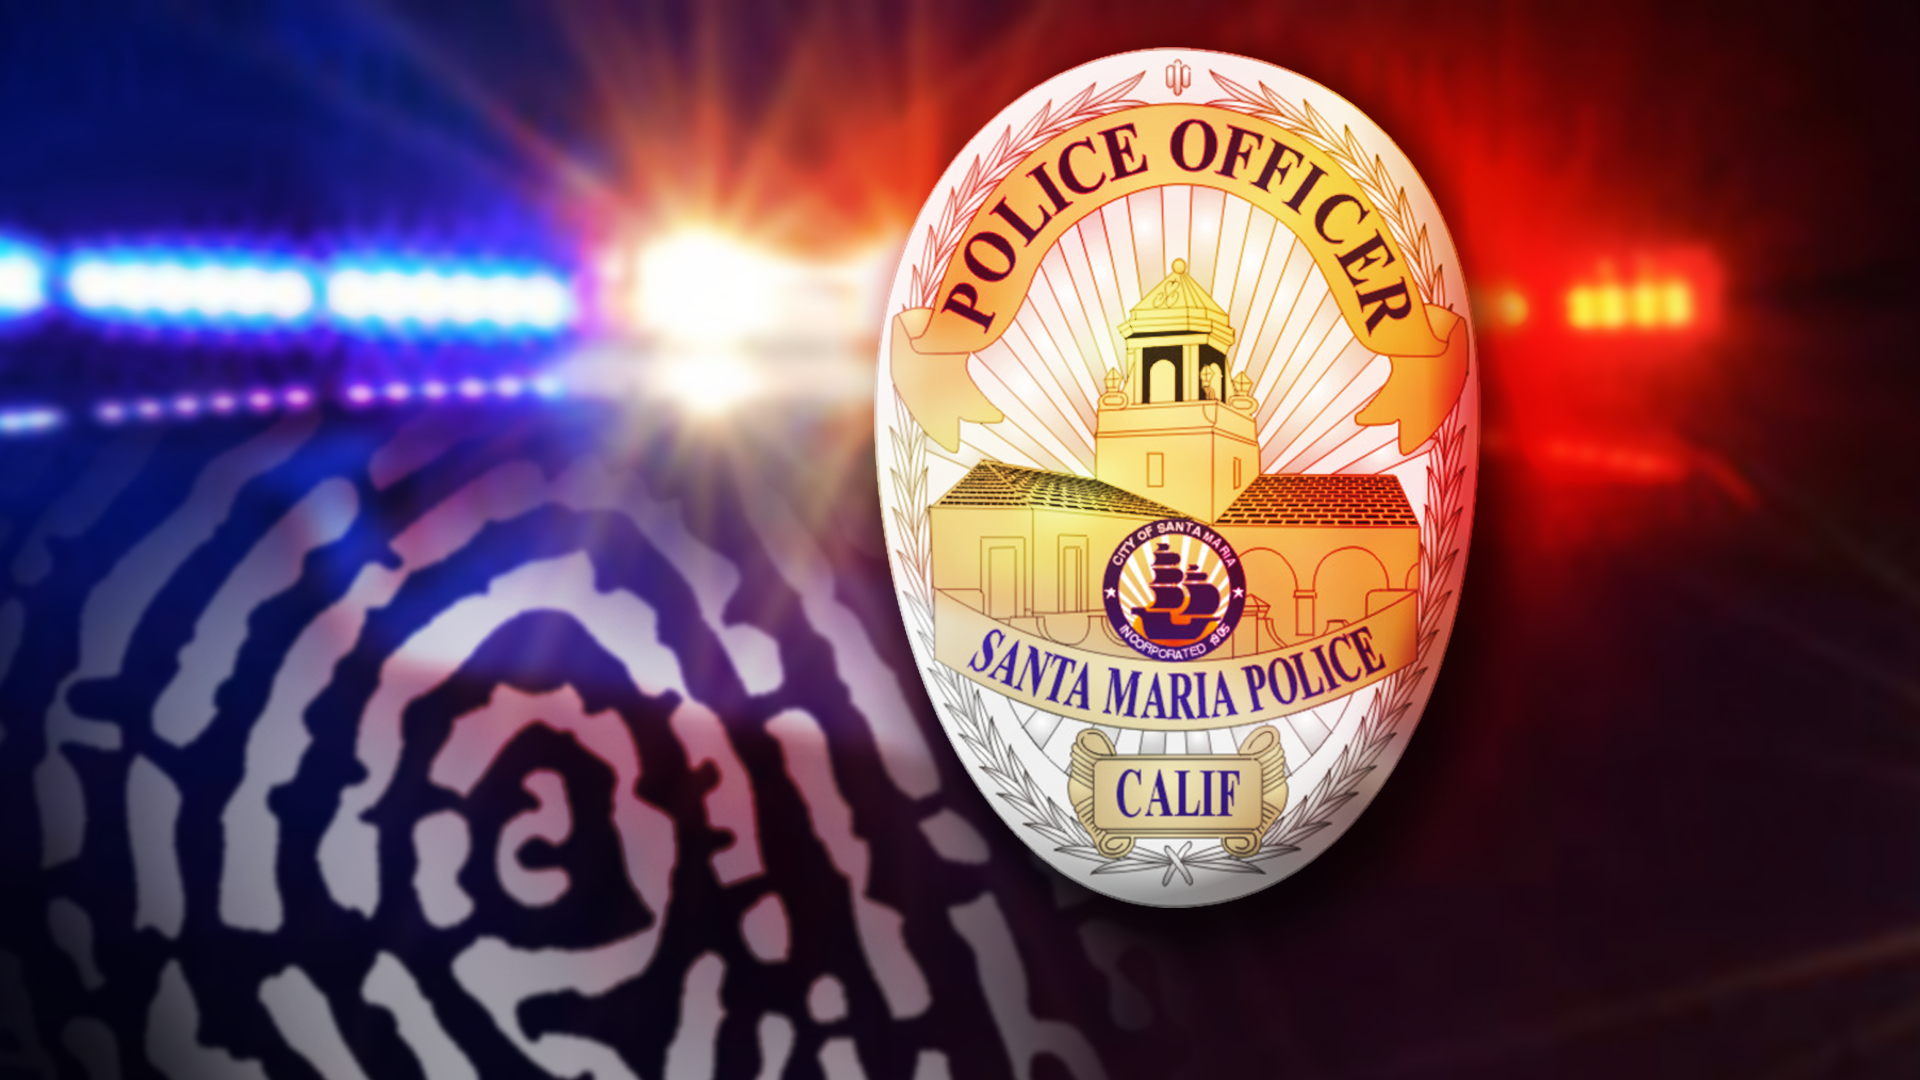 Juvenile in critical condition following weekend shooting in Santa Maria